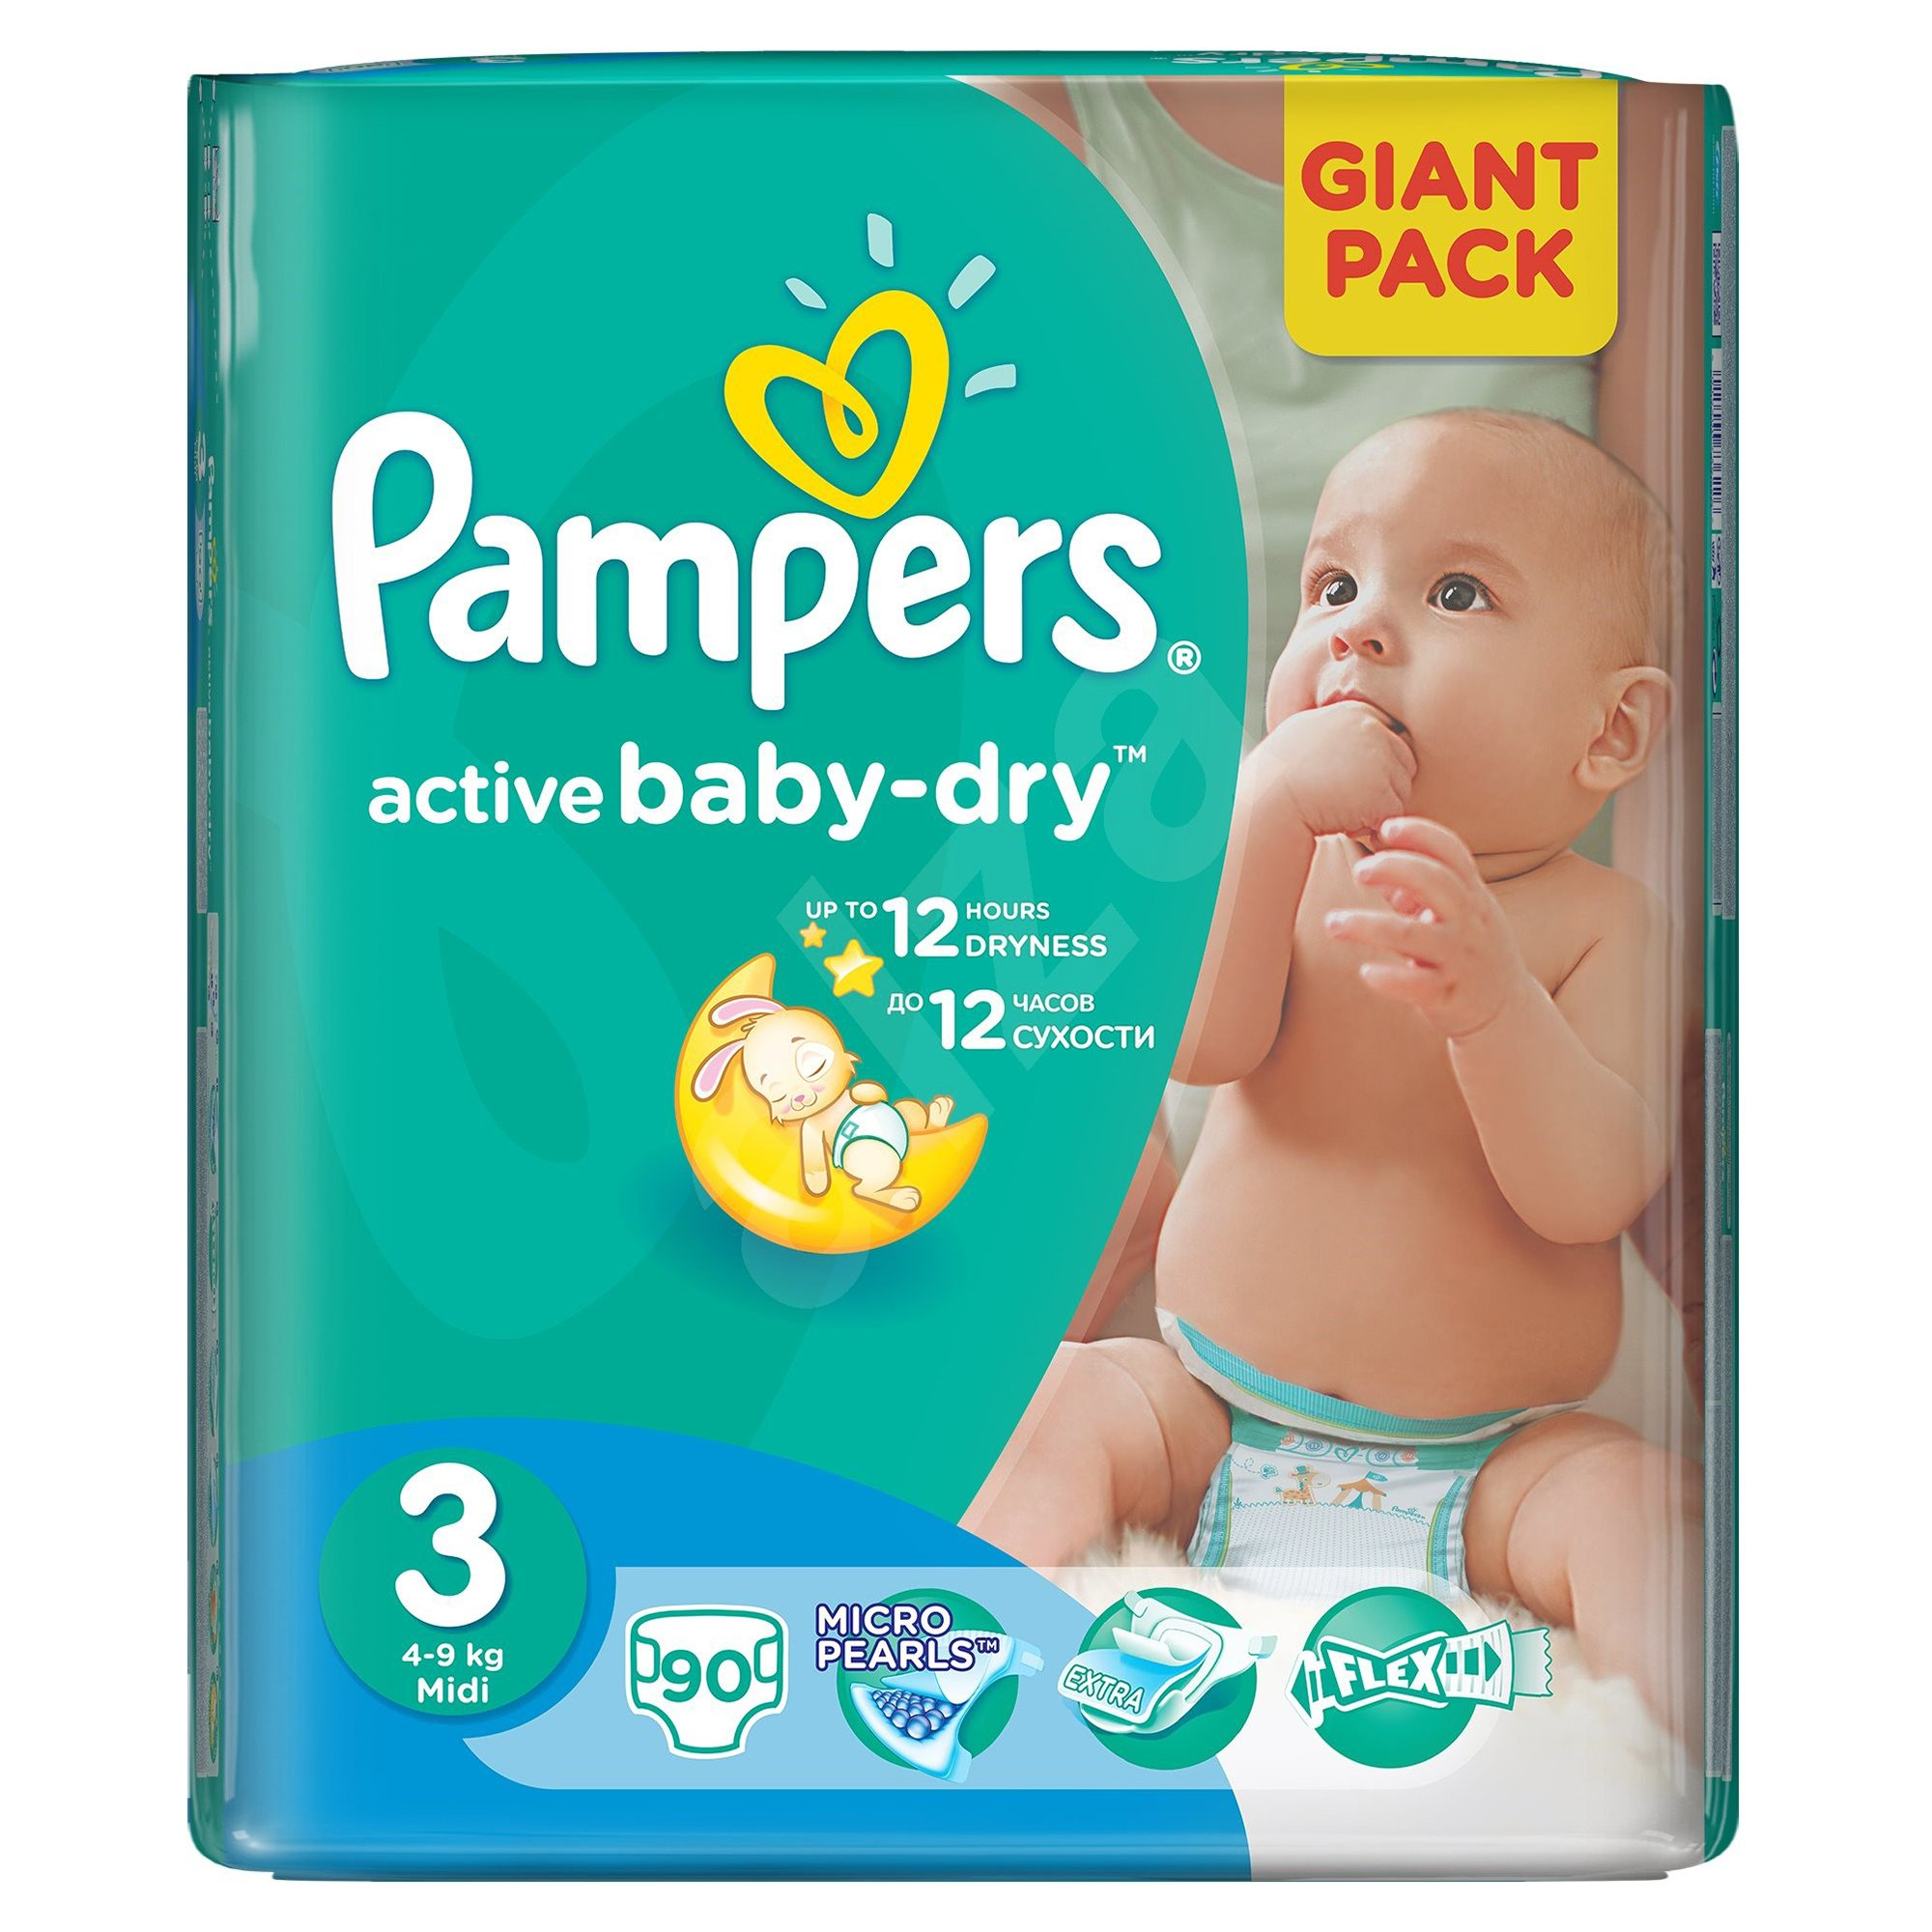 scutece pampers active baby-dry 3 midi, 90 buc, 4 - 9 kg